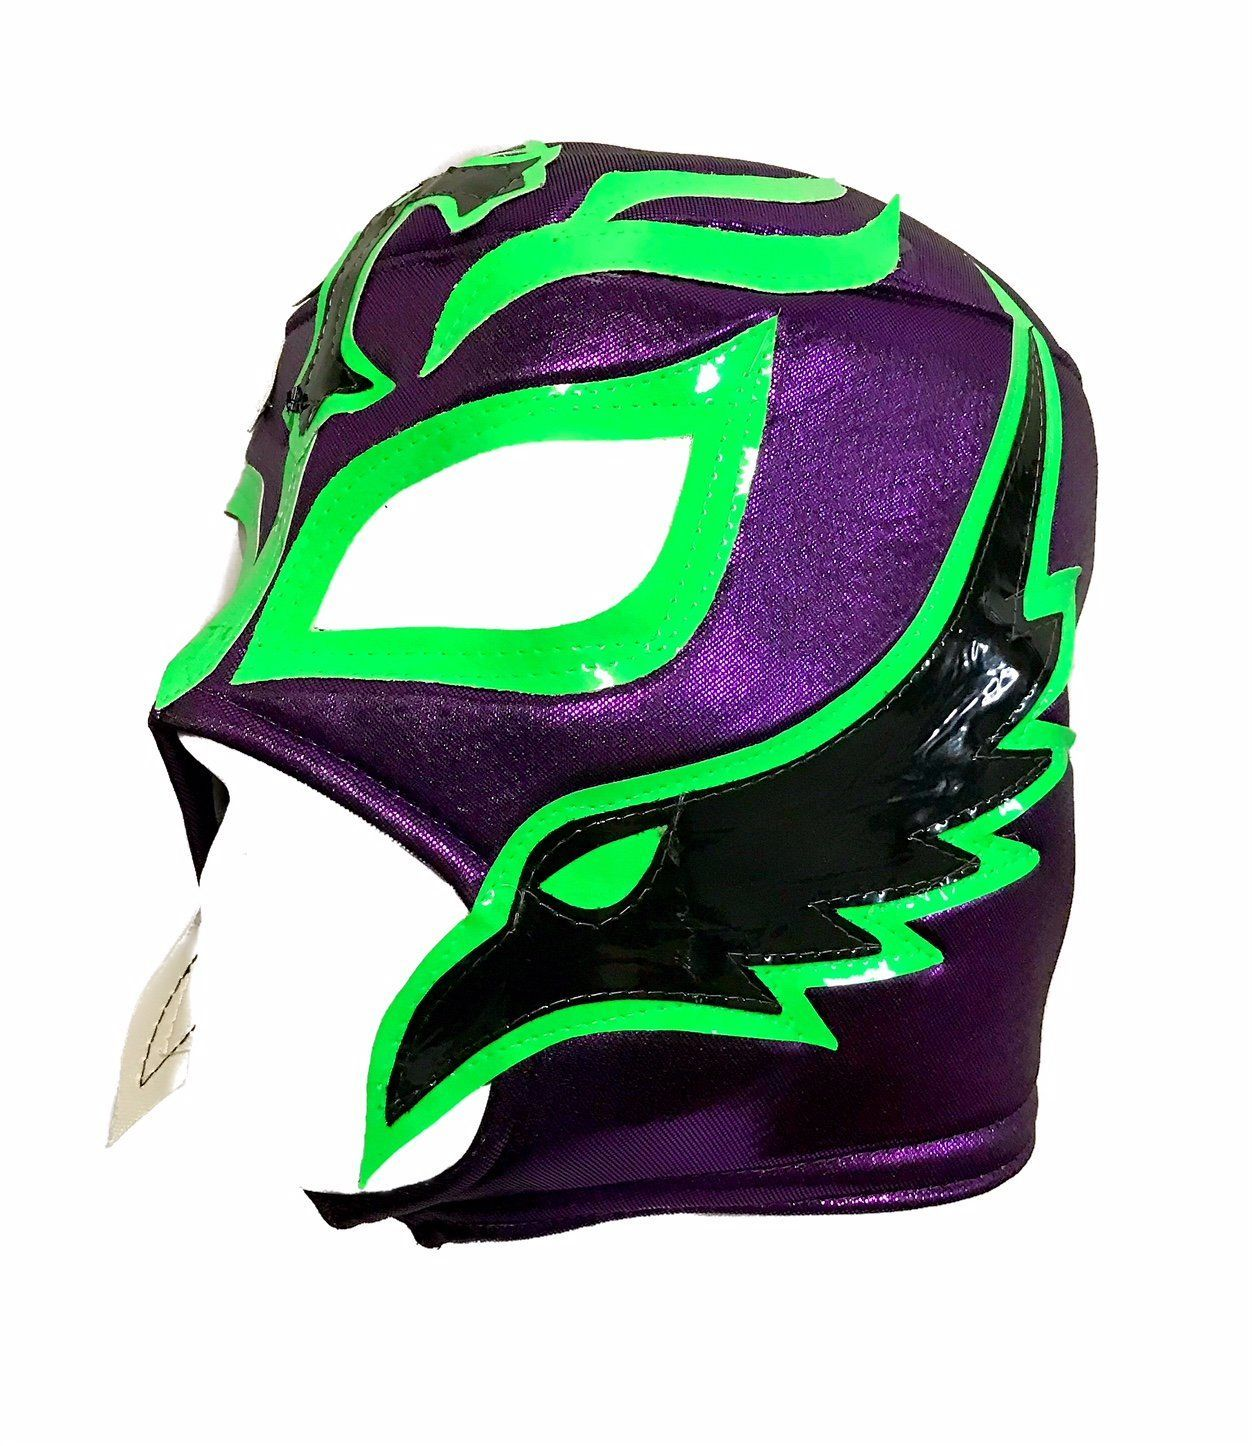 Rey Mysterio Mask Brand Used And 100 In Mexico